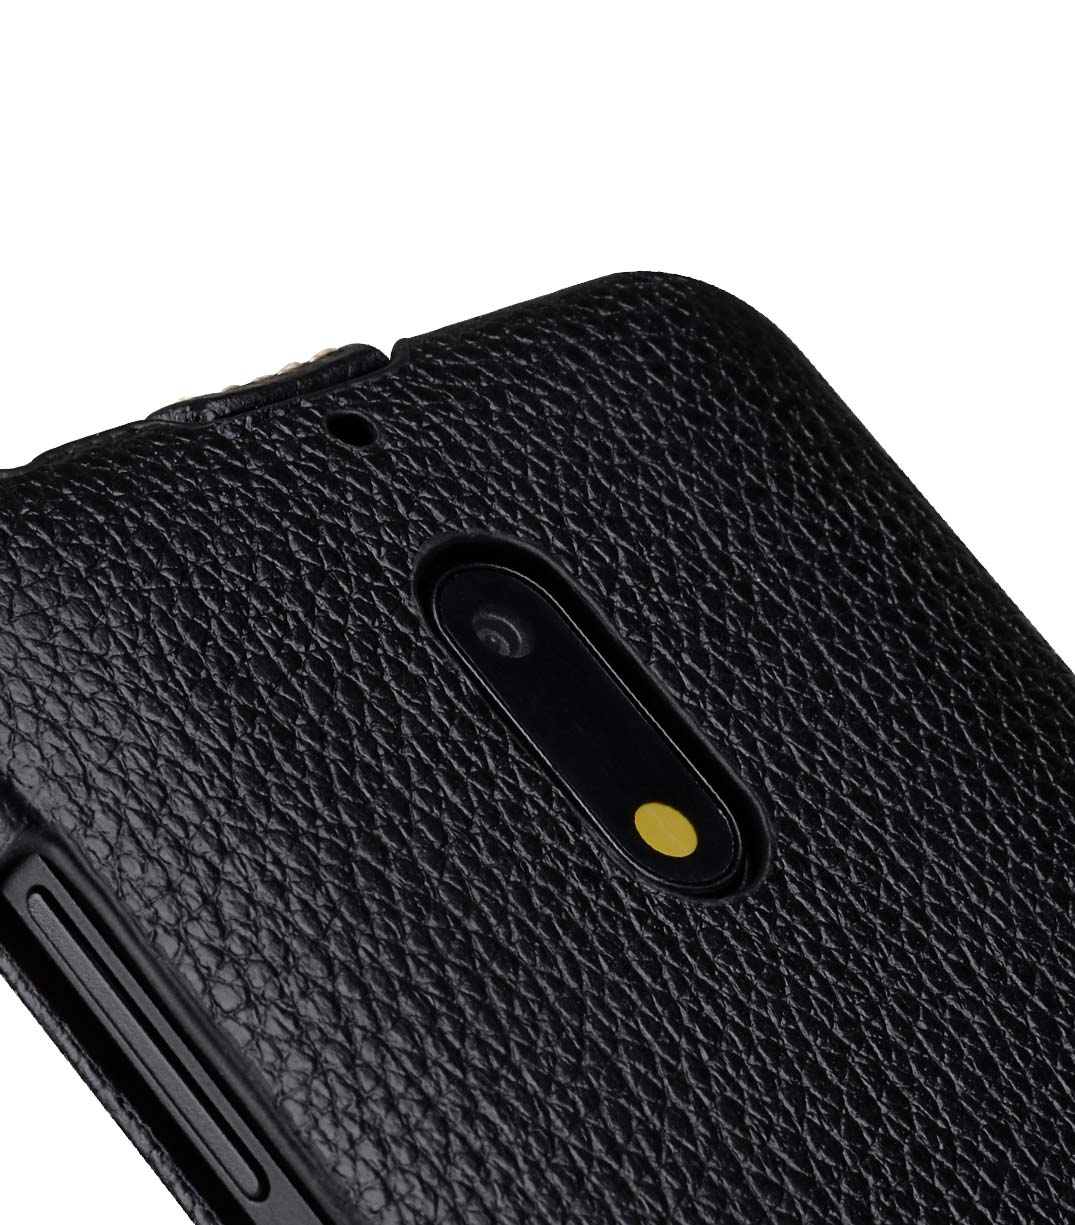 Premium Leather Case for Nokia 6 - Jacka Type (Black LC)